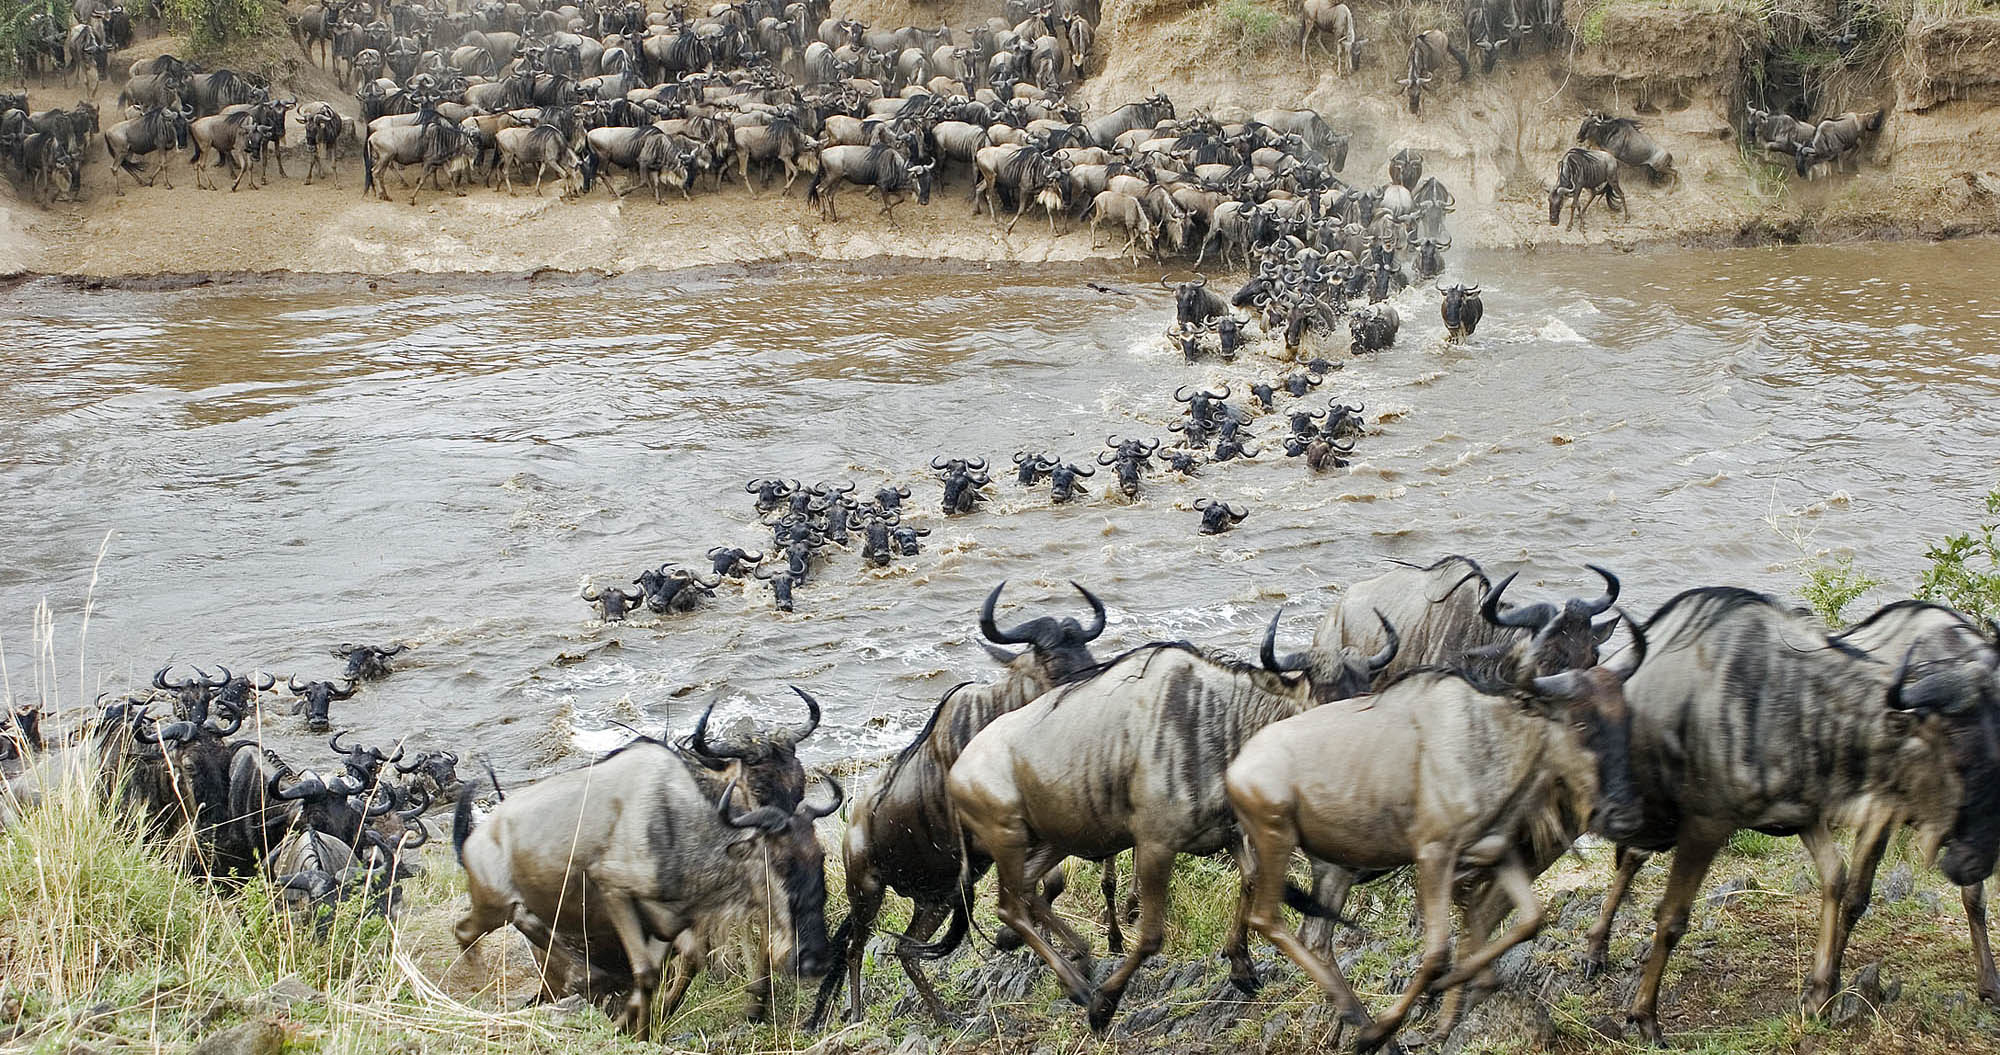 Wildebeest on their Great Migration Route